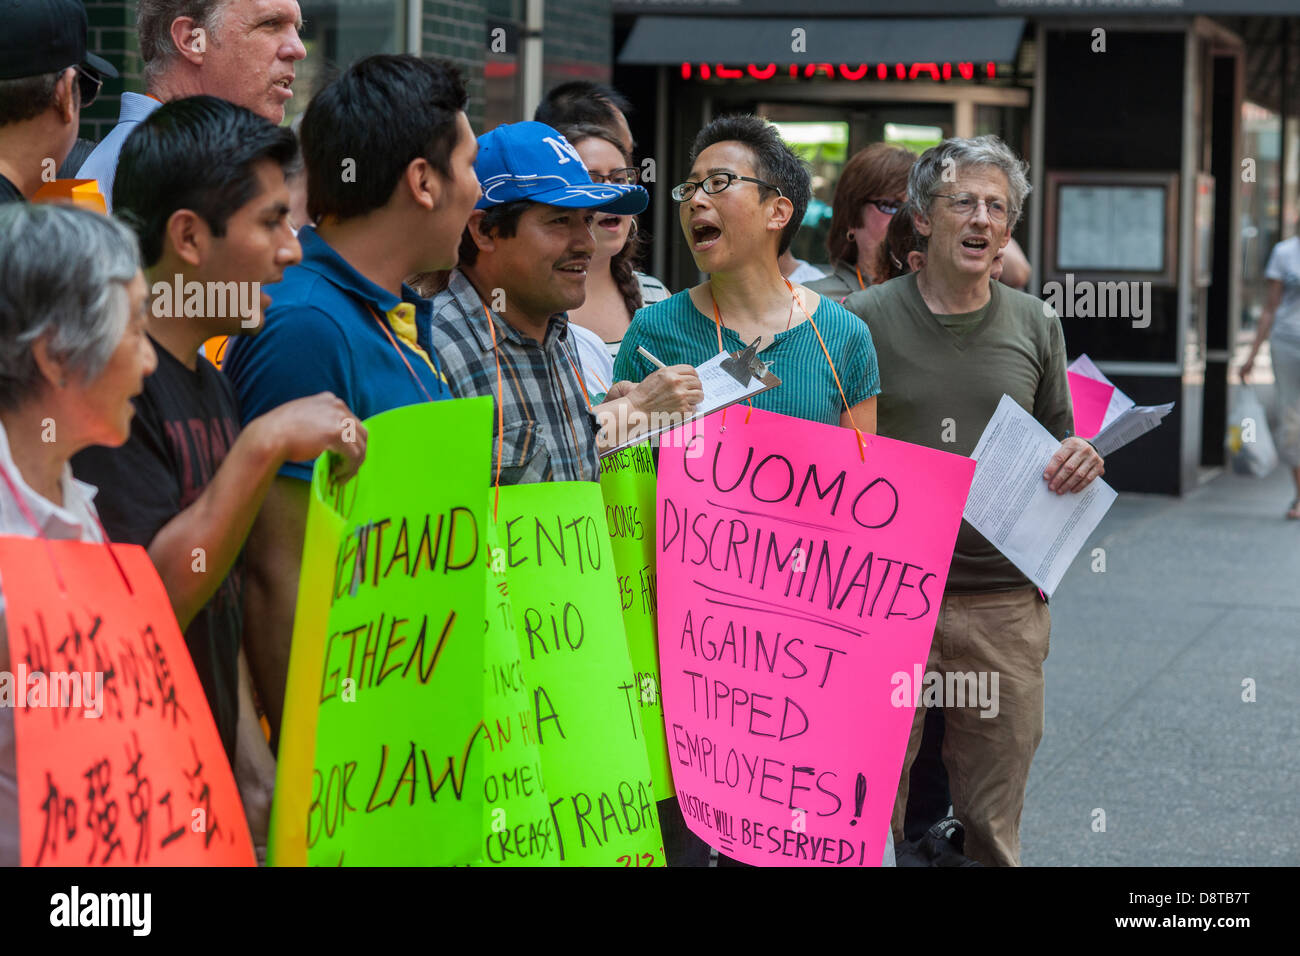 Minimum wage workers and their supporters rally to raise the minimum wage Stock Photo